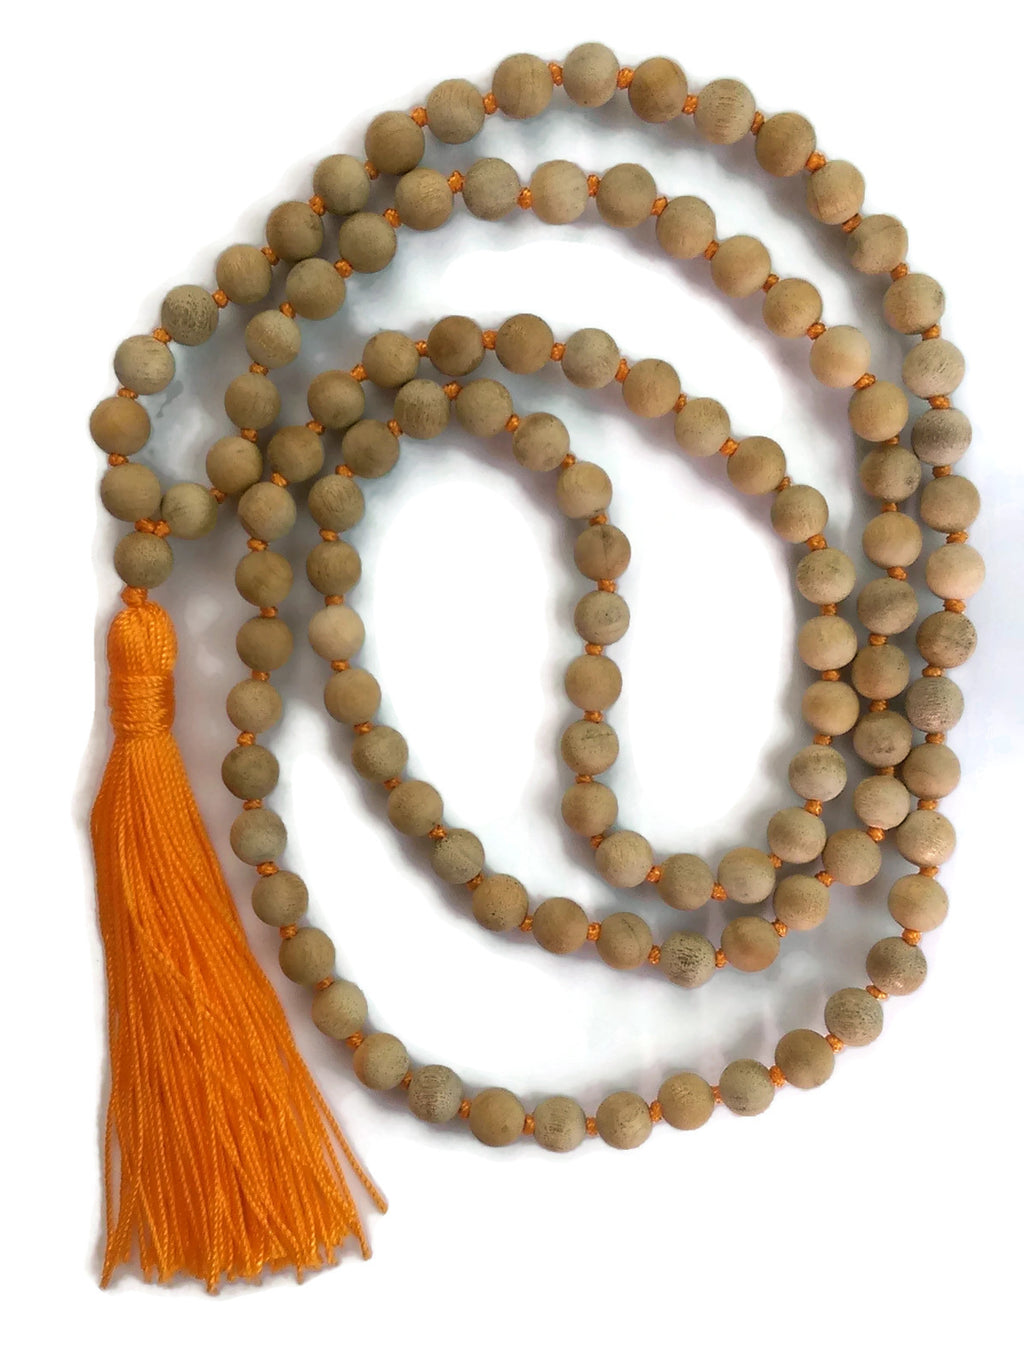 Sunset Collection 8mm Matte Golden Sandalwood Bead Traditional Knotted 108 Meditation Mala Necklace